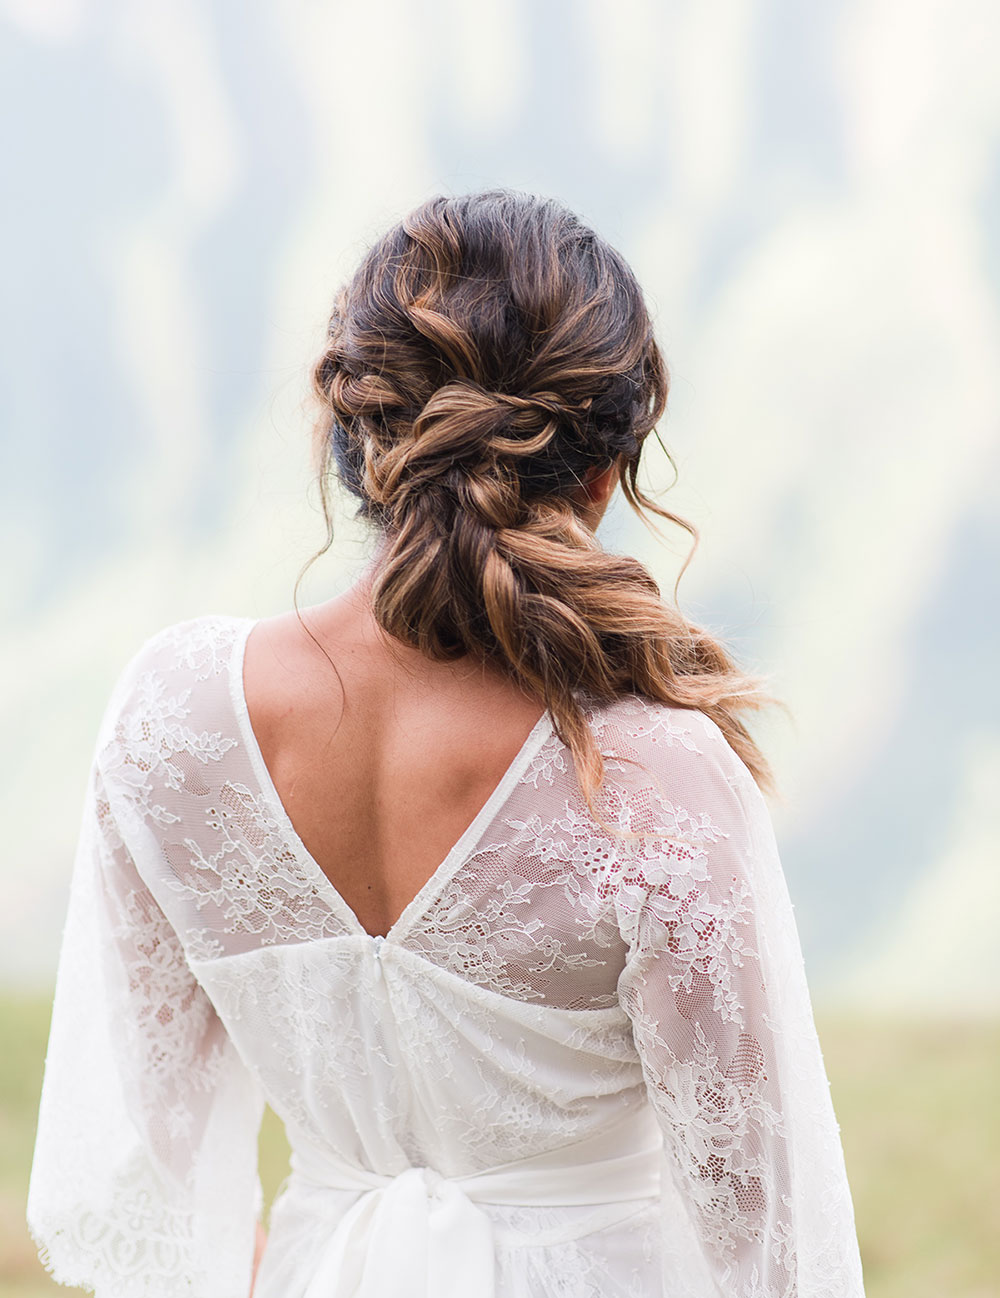 bridal-braid-kauai-wedding-hairstyle.jpg